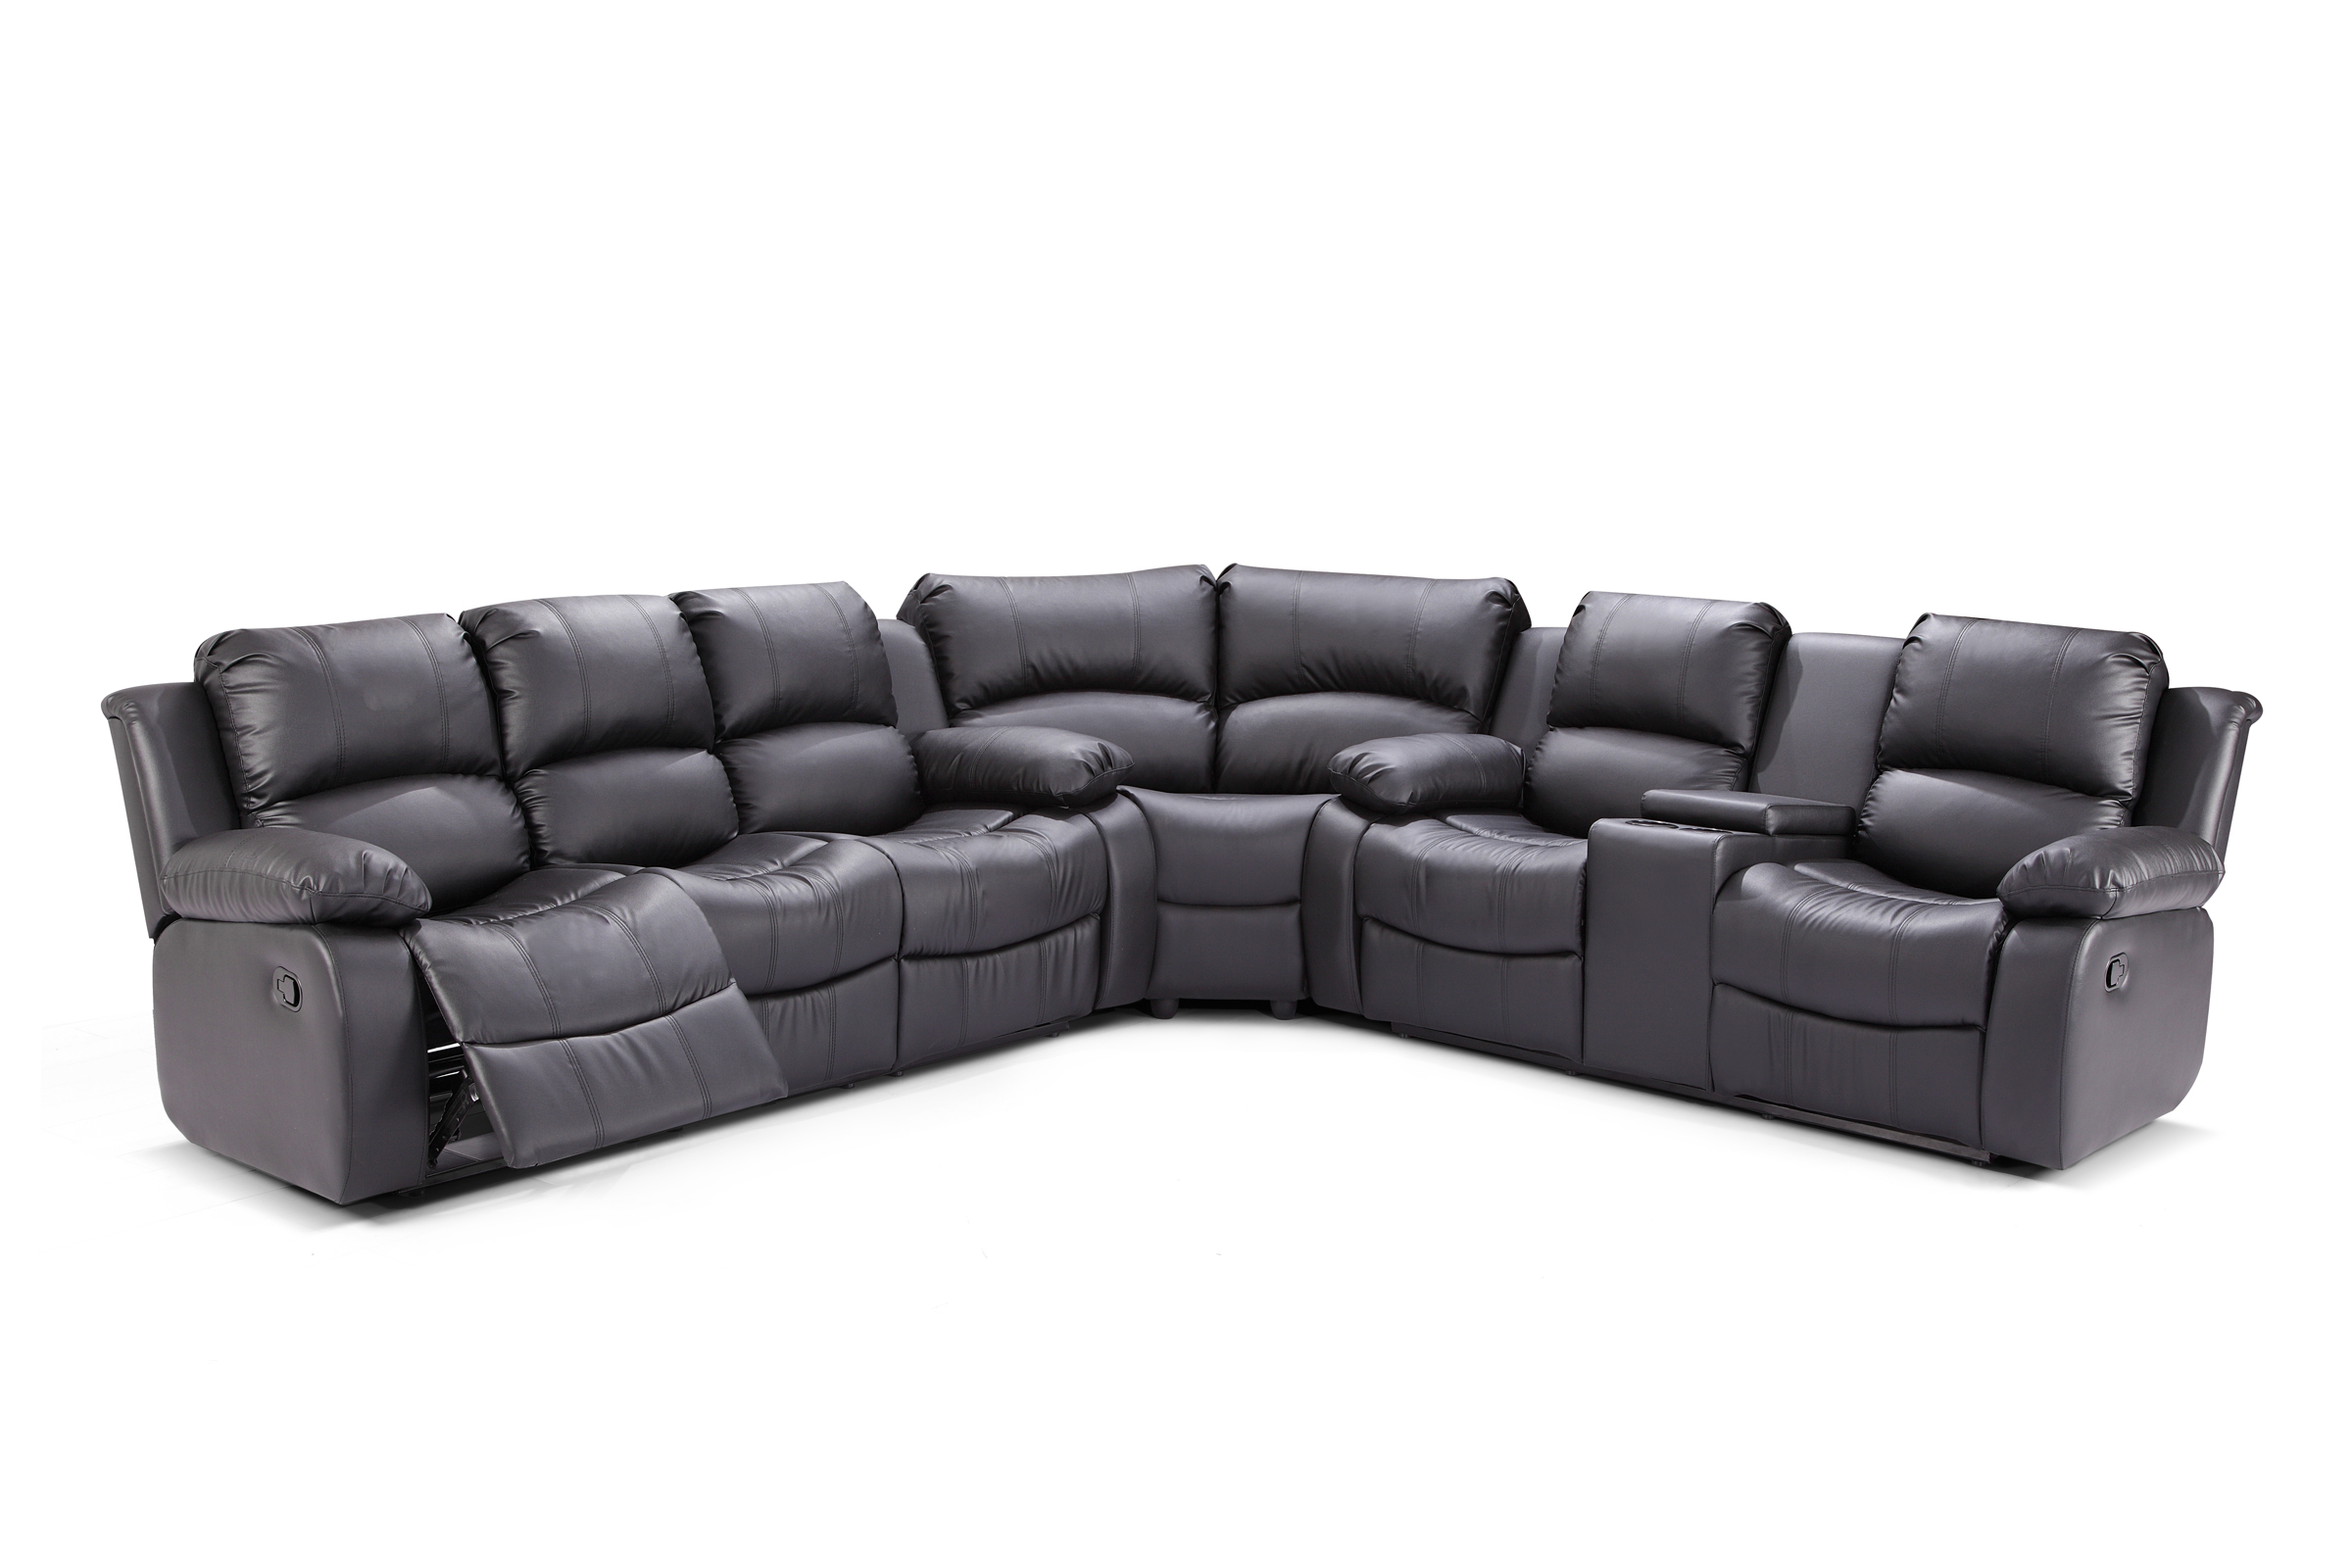 Zoey 3 pc Black Bonded Leather Living Room Reclining Sectional